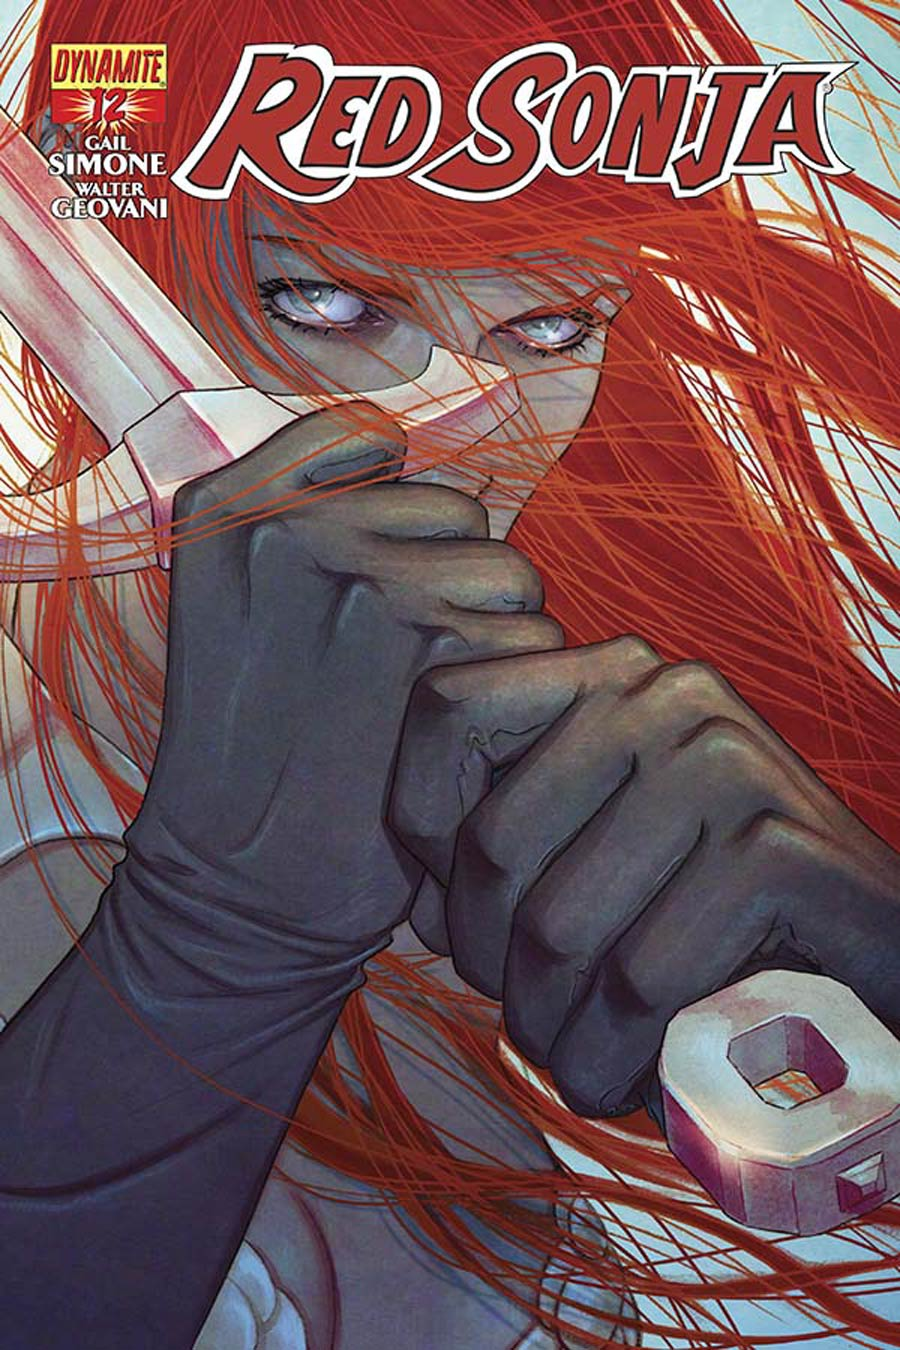 Red Sonja Vol 5 #12 Cover A Regular Jenny Frison Cover